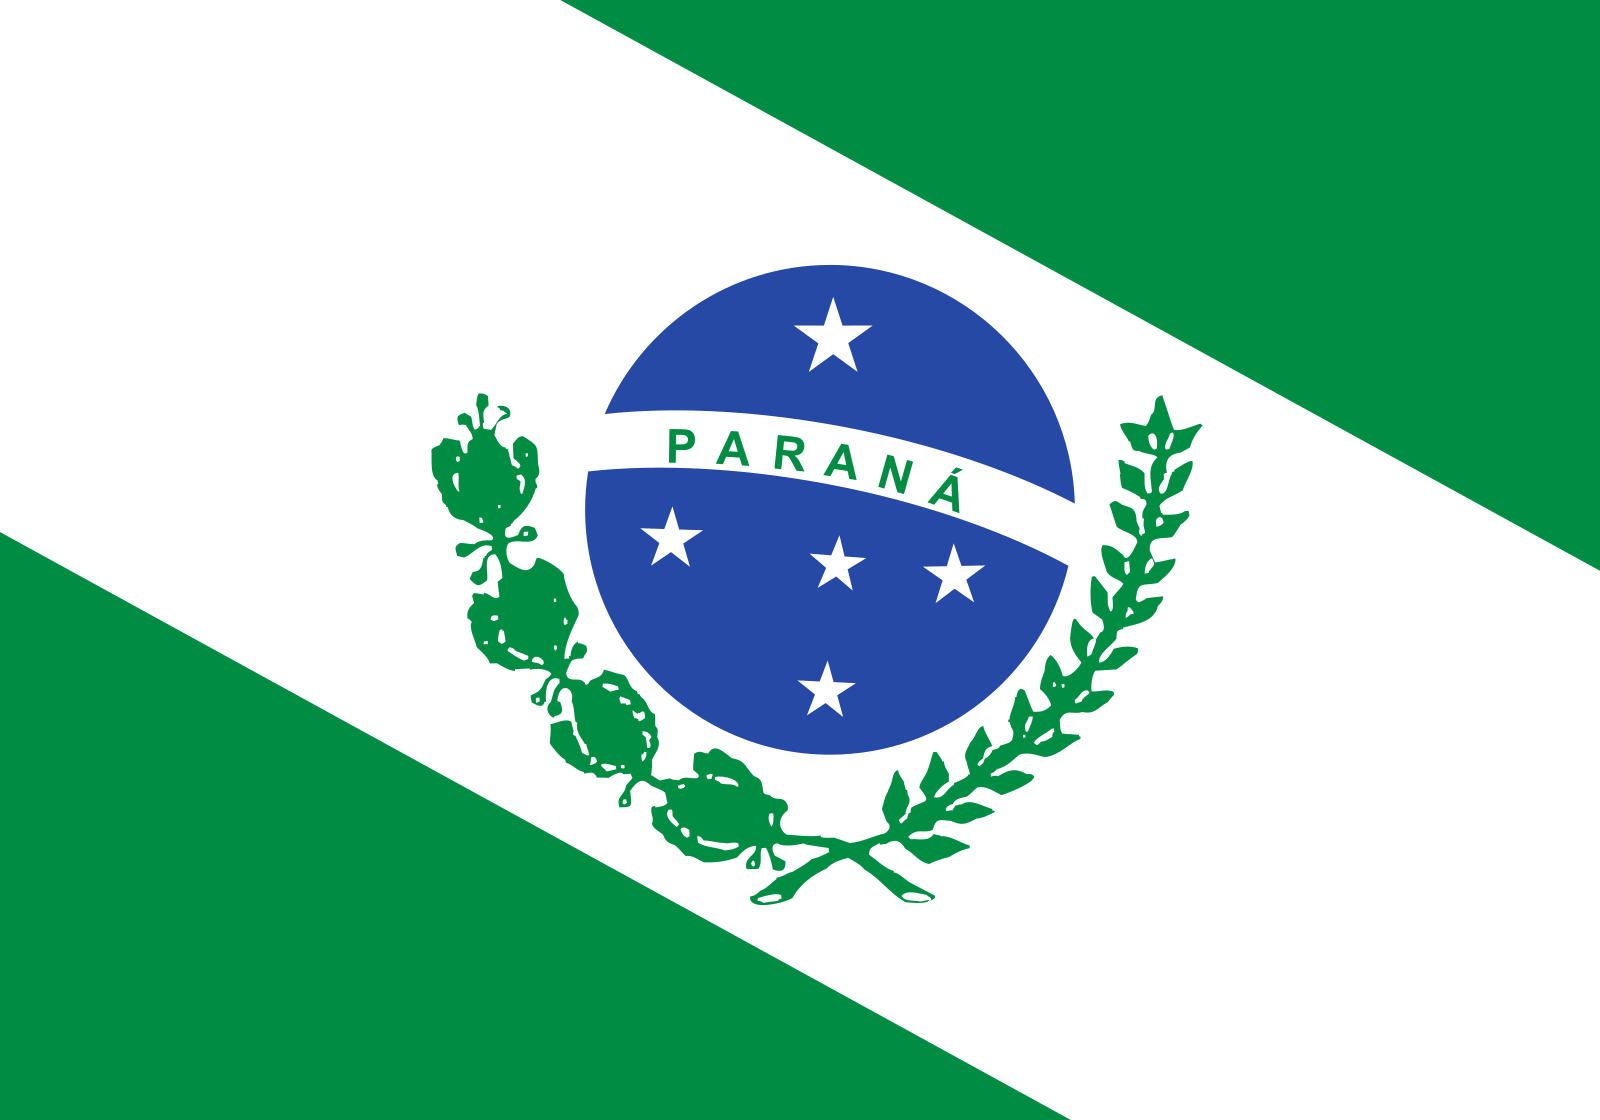 bandeira-do-estado-do-parana-2